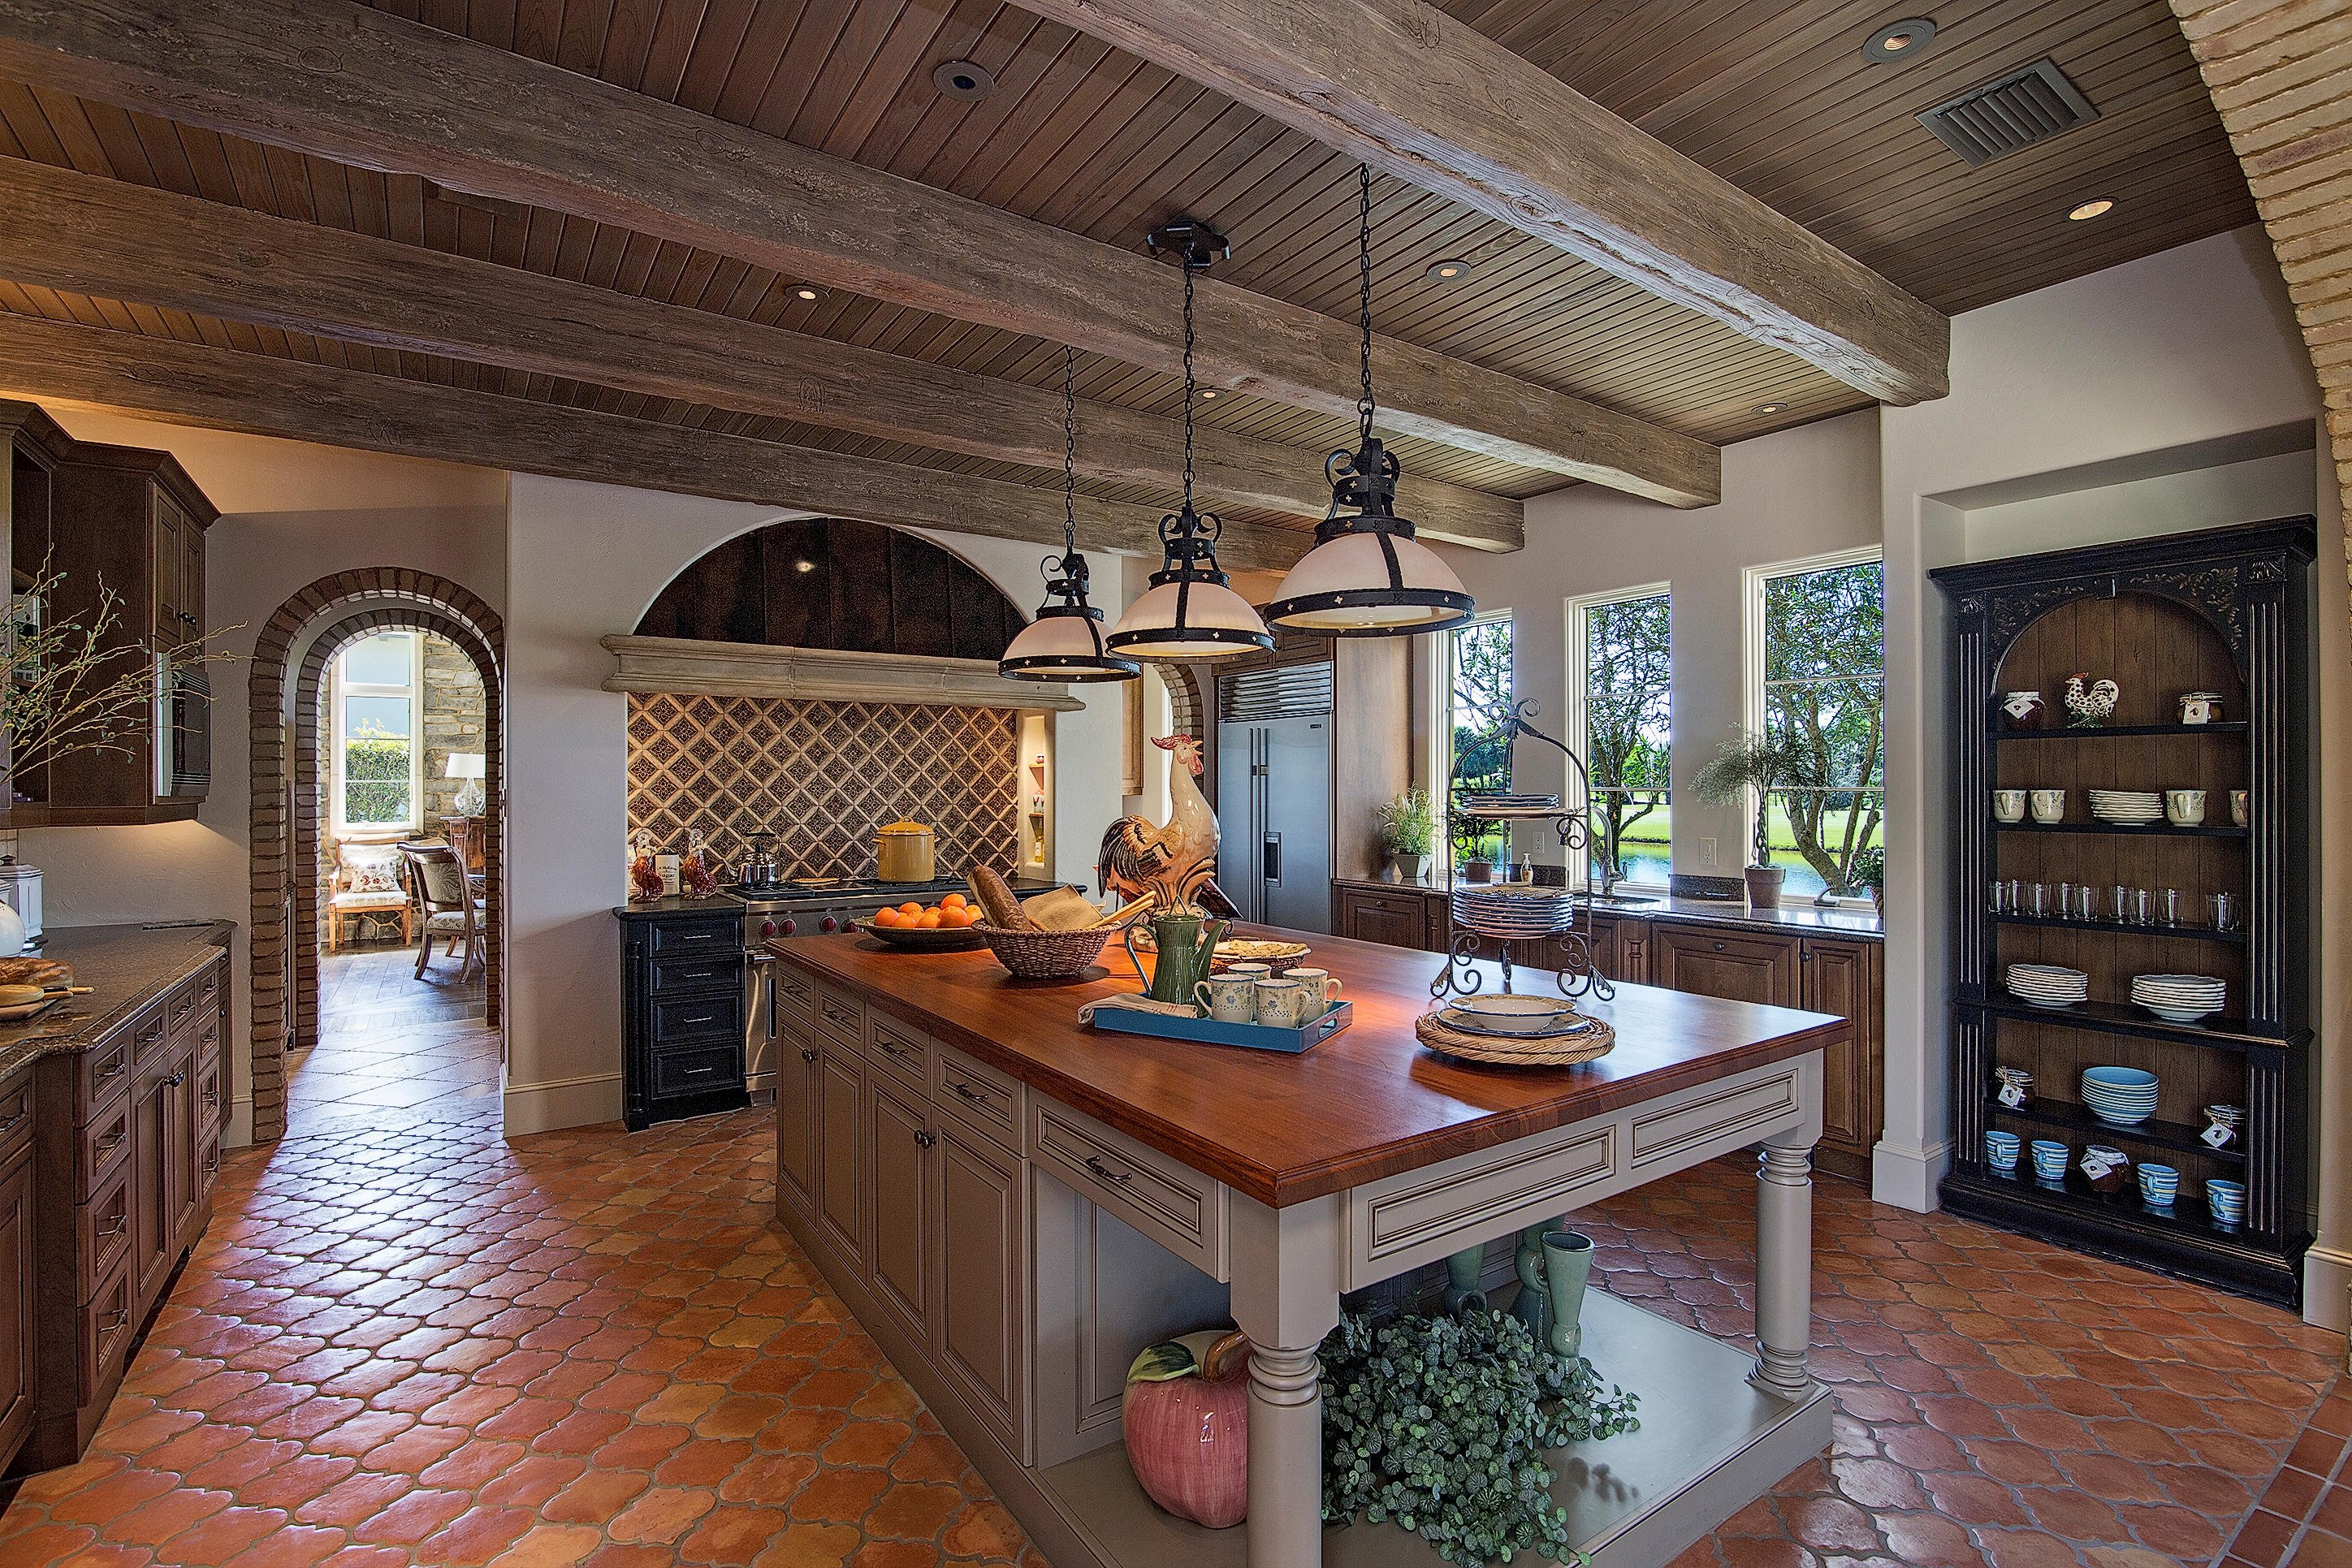 The Chianti Iii In Estuary At Grey Oaks Is A Luxury Home Offering Best Kitchen